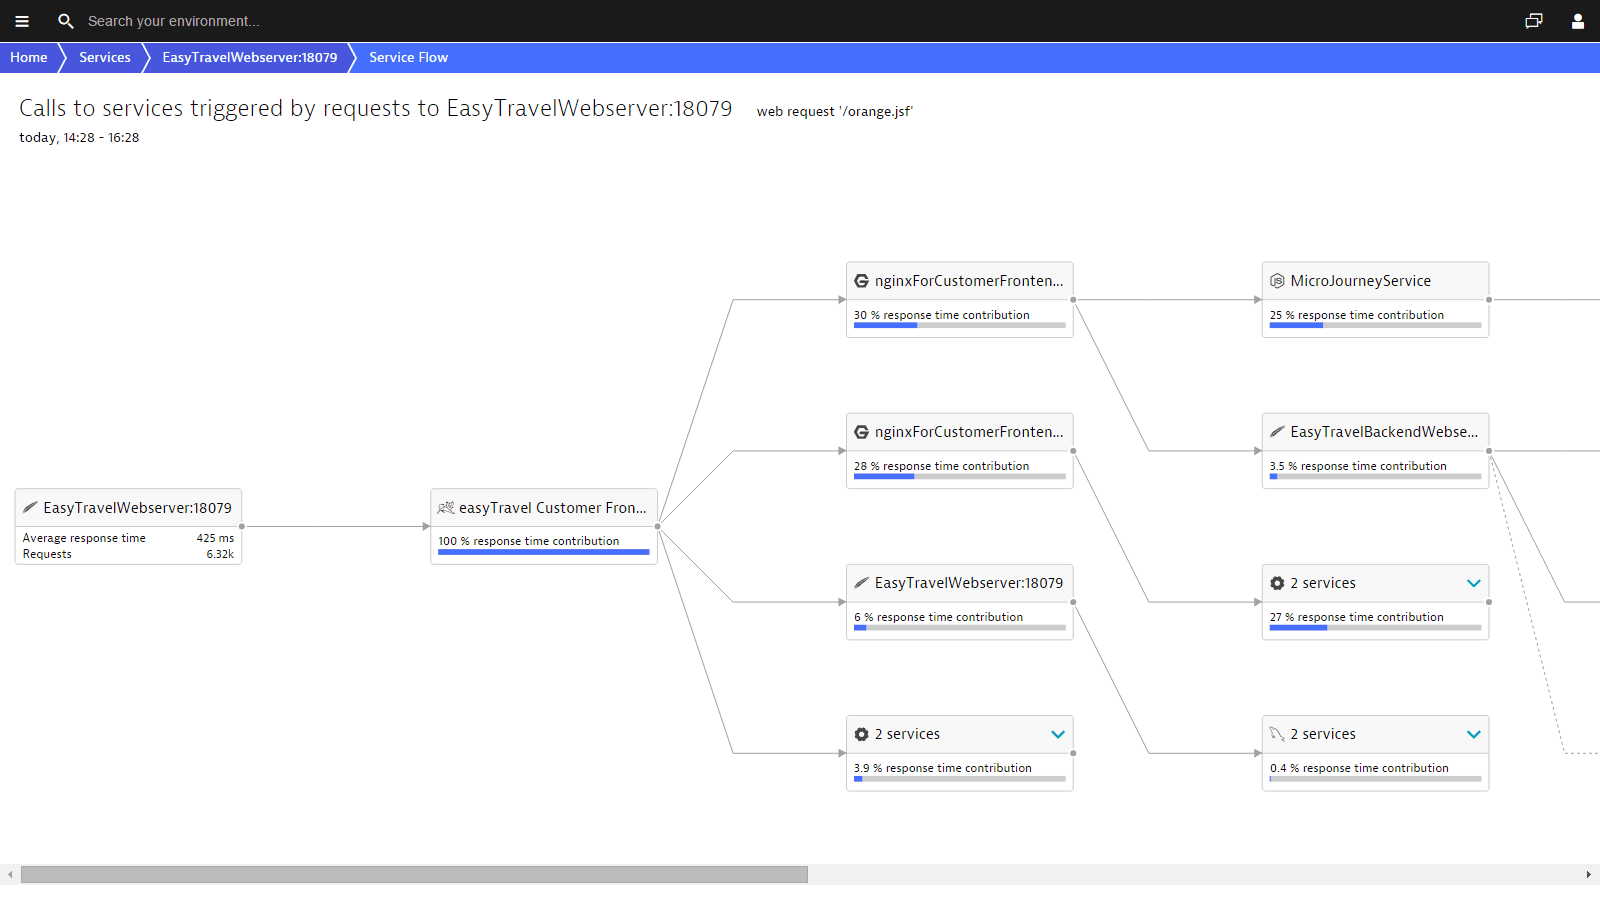 Dynatrace service flow visualizes service requests end-to-end.